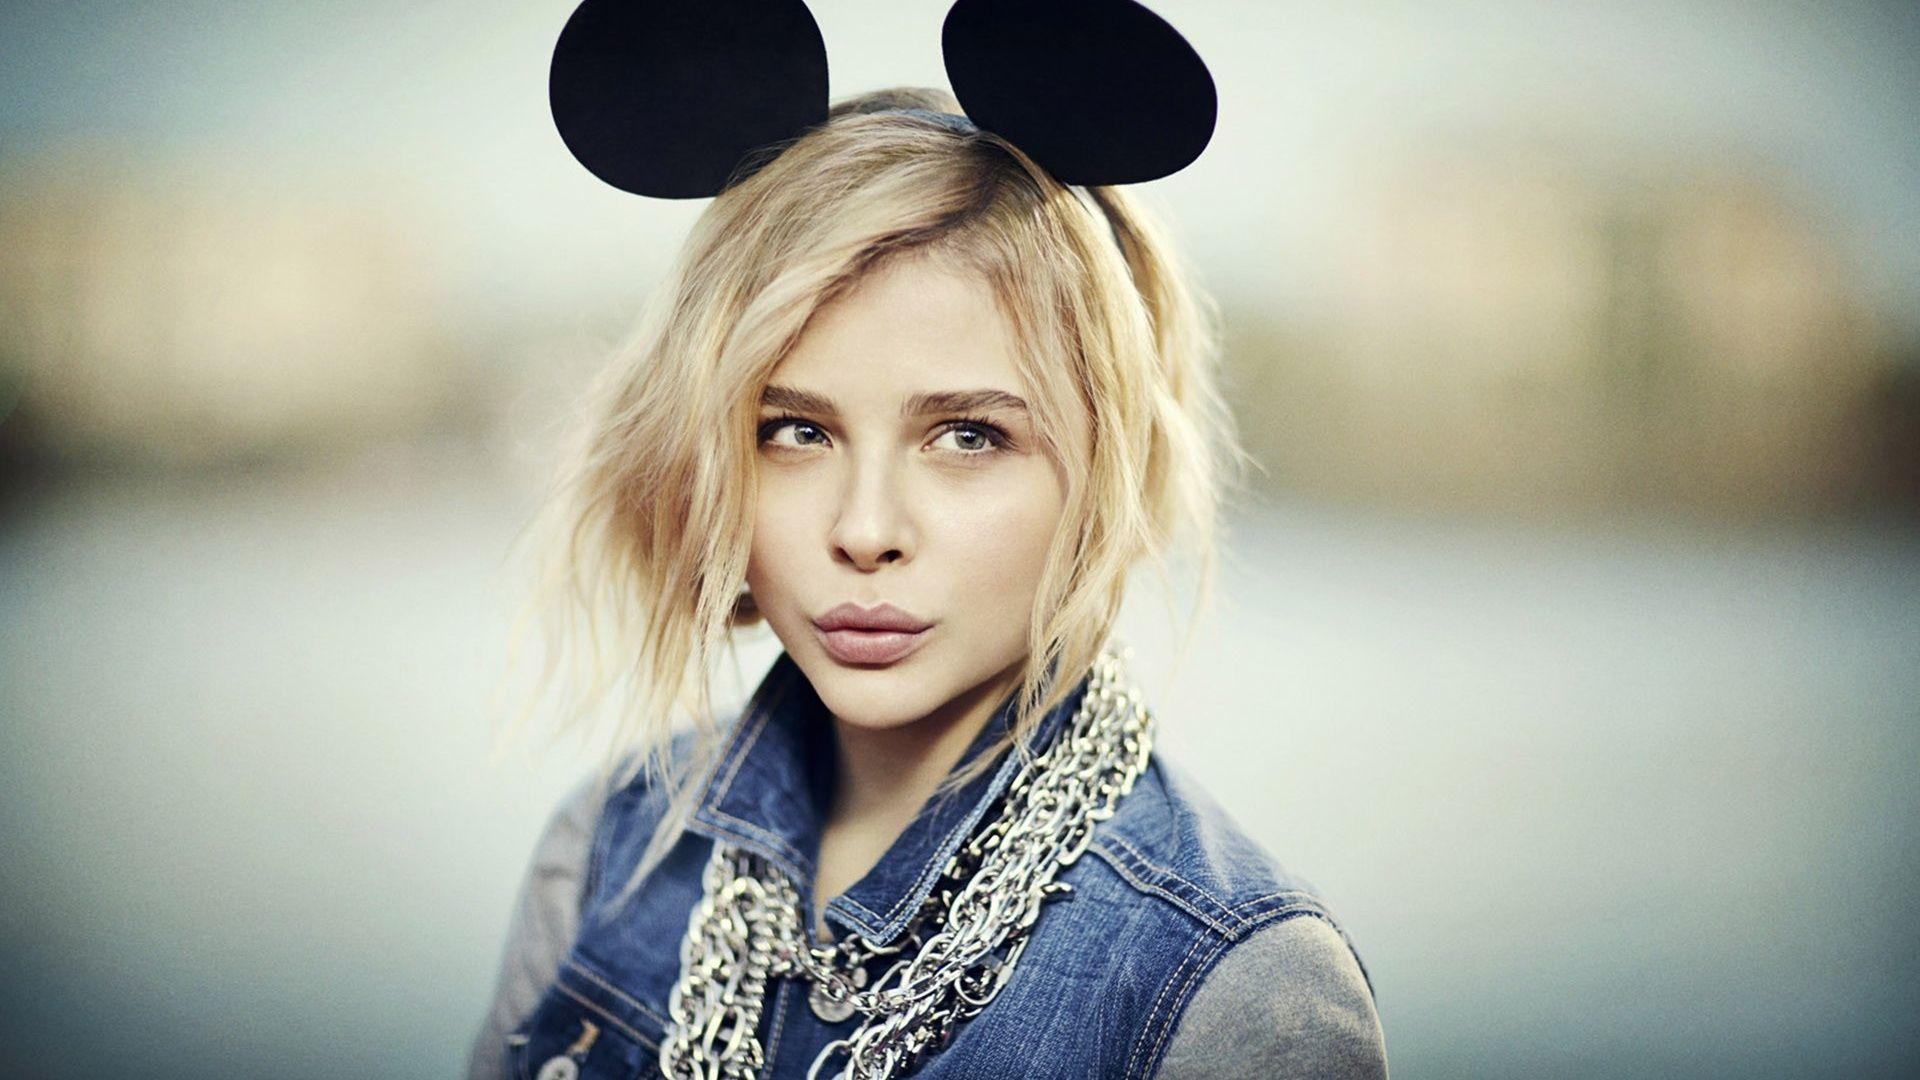 Cute Chloe Grace Moretz Wallpaper.